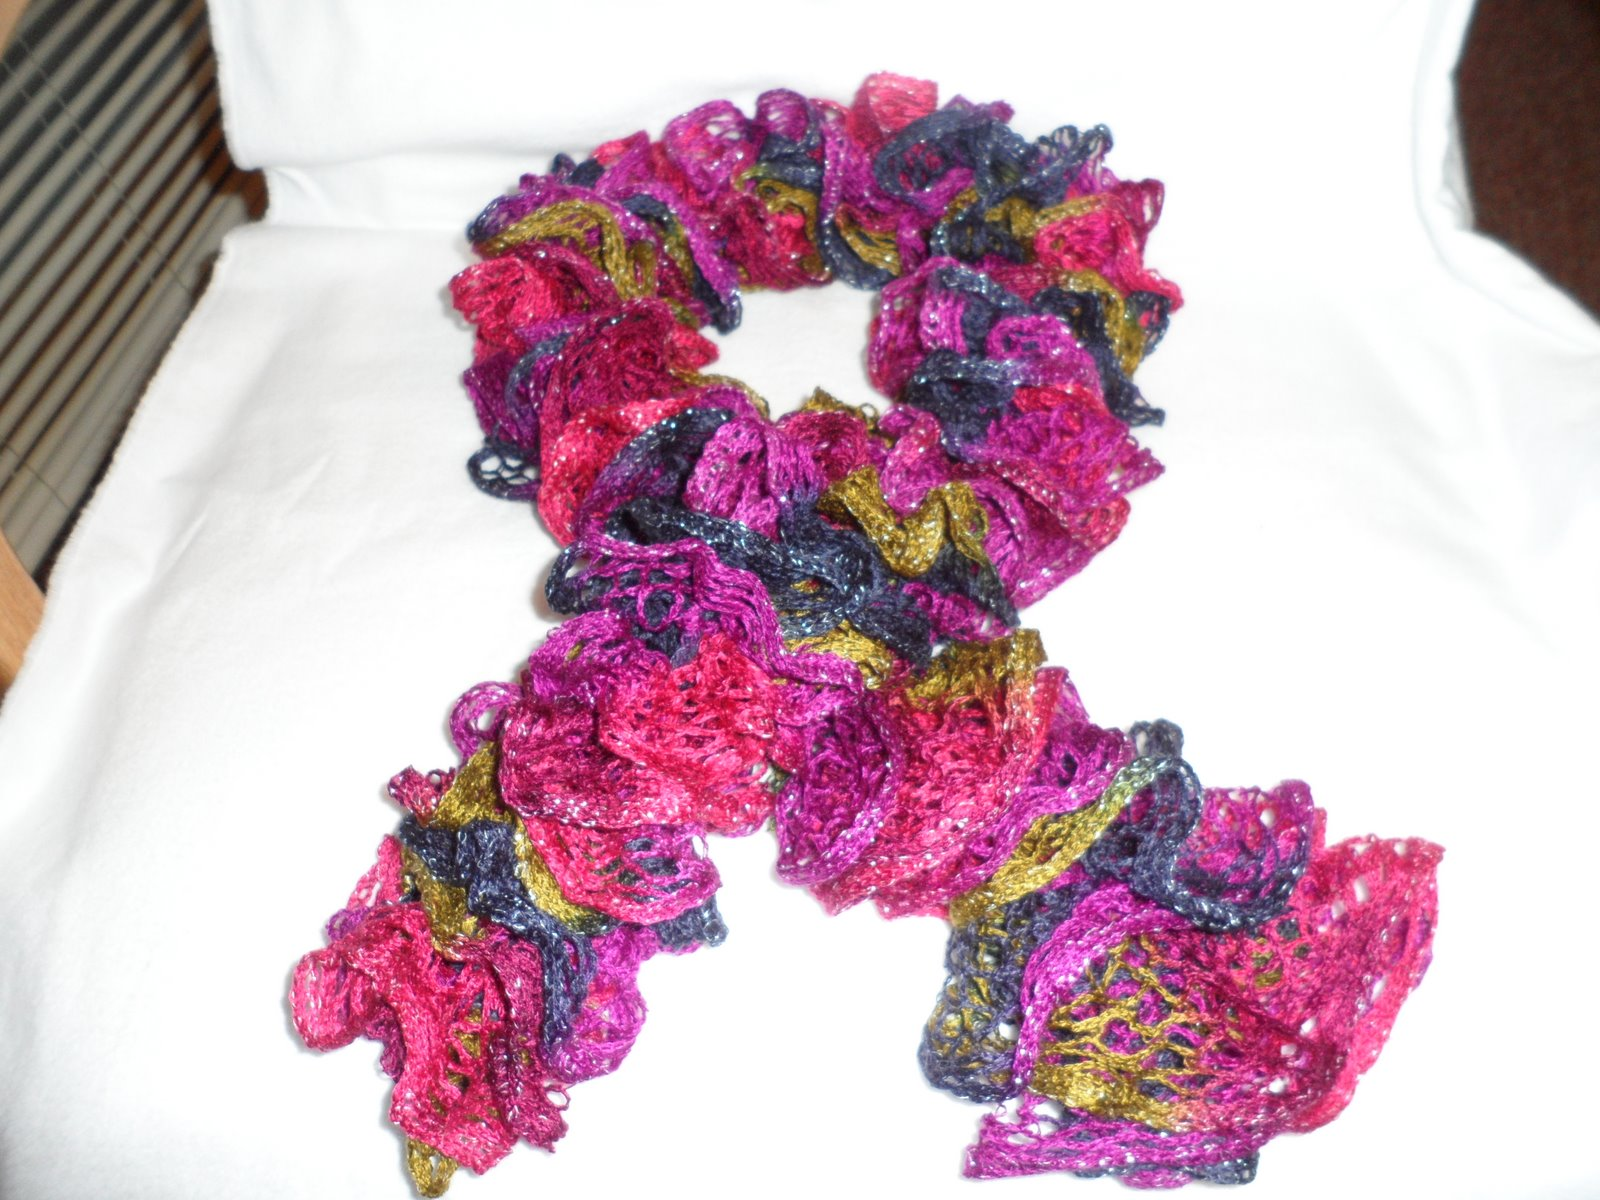 Crocheting Ruffle Scarf : Easy Crochet Pattern: Ruffled Scarf